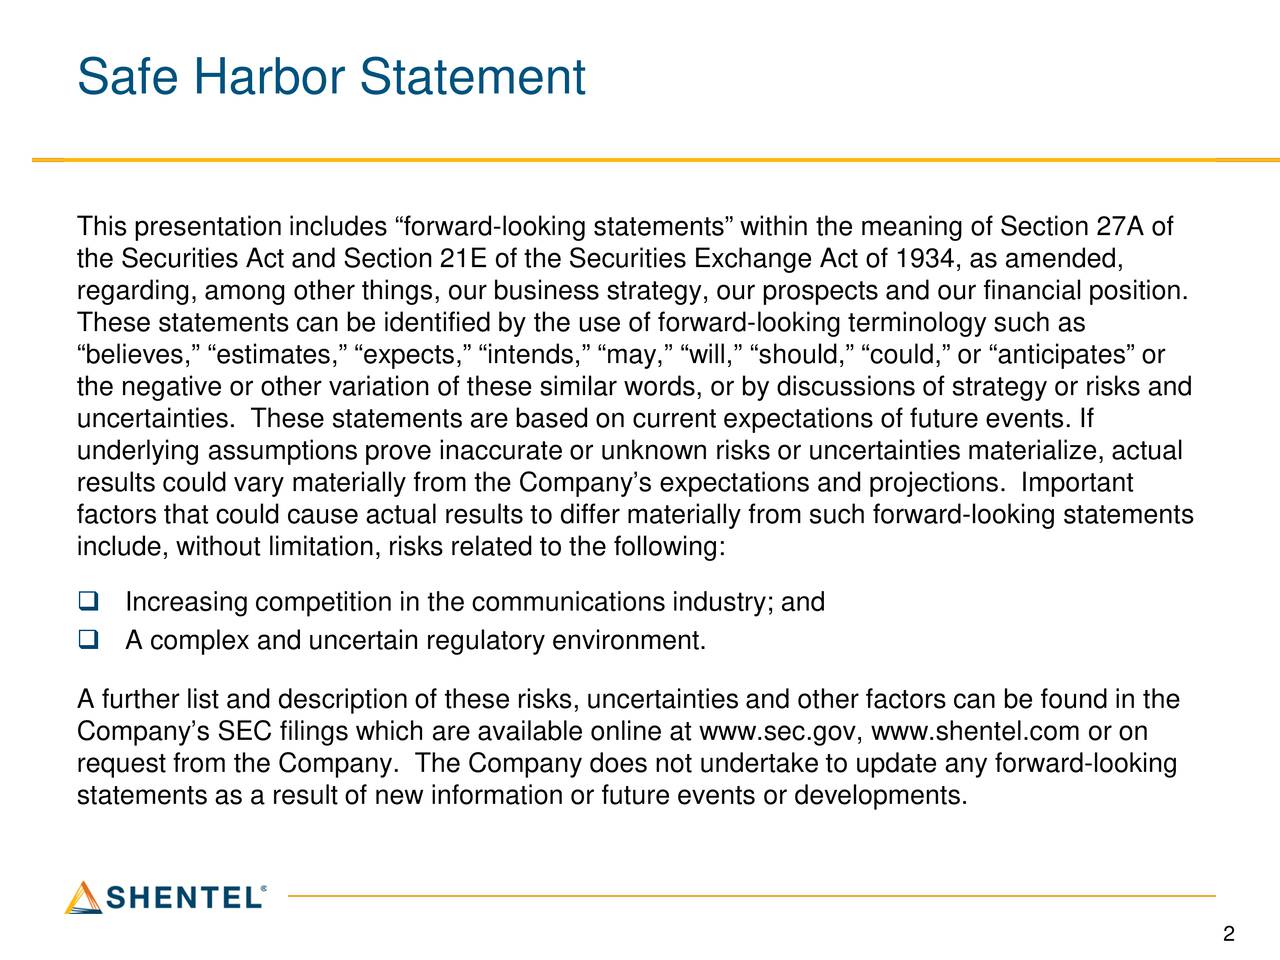 This presentation includes forward-looking statements within the meaning of Section 27A of the Securities Act and Section 21E of the Securities Exchange Act of 1934, as amended, regarding, among other things, our business strategy, our prospects and our financial position. These statements can be identified by the use of forward-looking terminology such as believes, estimates, expects, intends, may, will, should, could, or anticipates or the negative or other variation of these similar words, or by discussions of strategy or risks and uncertainties. These statements are based on current expectations of future events. If underlying assumptions prove inaccurate or unknown risks or uncertainties materialize, actual results could vary materially from the Companys expectations and projections. Important factors that could cause actual results to differ materially from such forward-looking statements include, without limitation, risks related to the following: Increasing competition in the communications industry; and A complex and uncertain regulatory environment. A further list and description of these risks, uncertainties and other factors can be found in the Companys SEC filings which are available online at www.sec.gov, www.shentel.com or on request from the Company. The Company does not undertake to update any forward-looking statements as a result of new information or future events or developments. 2